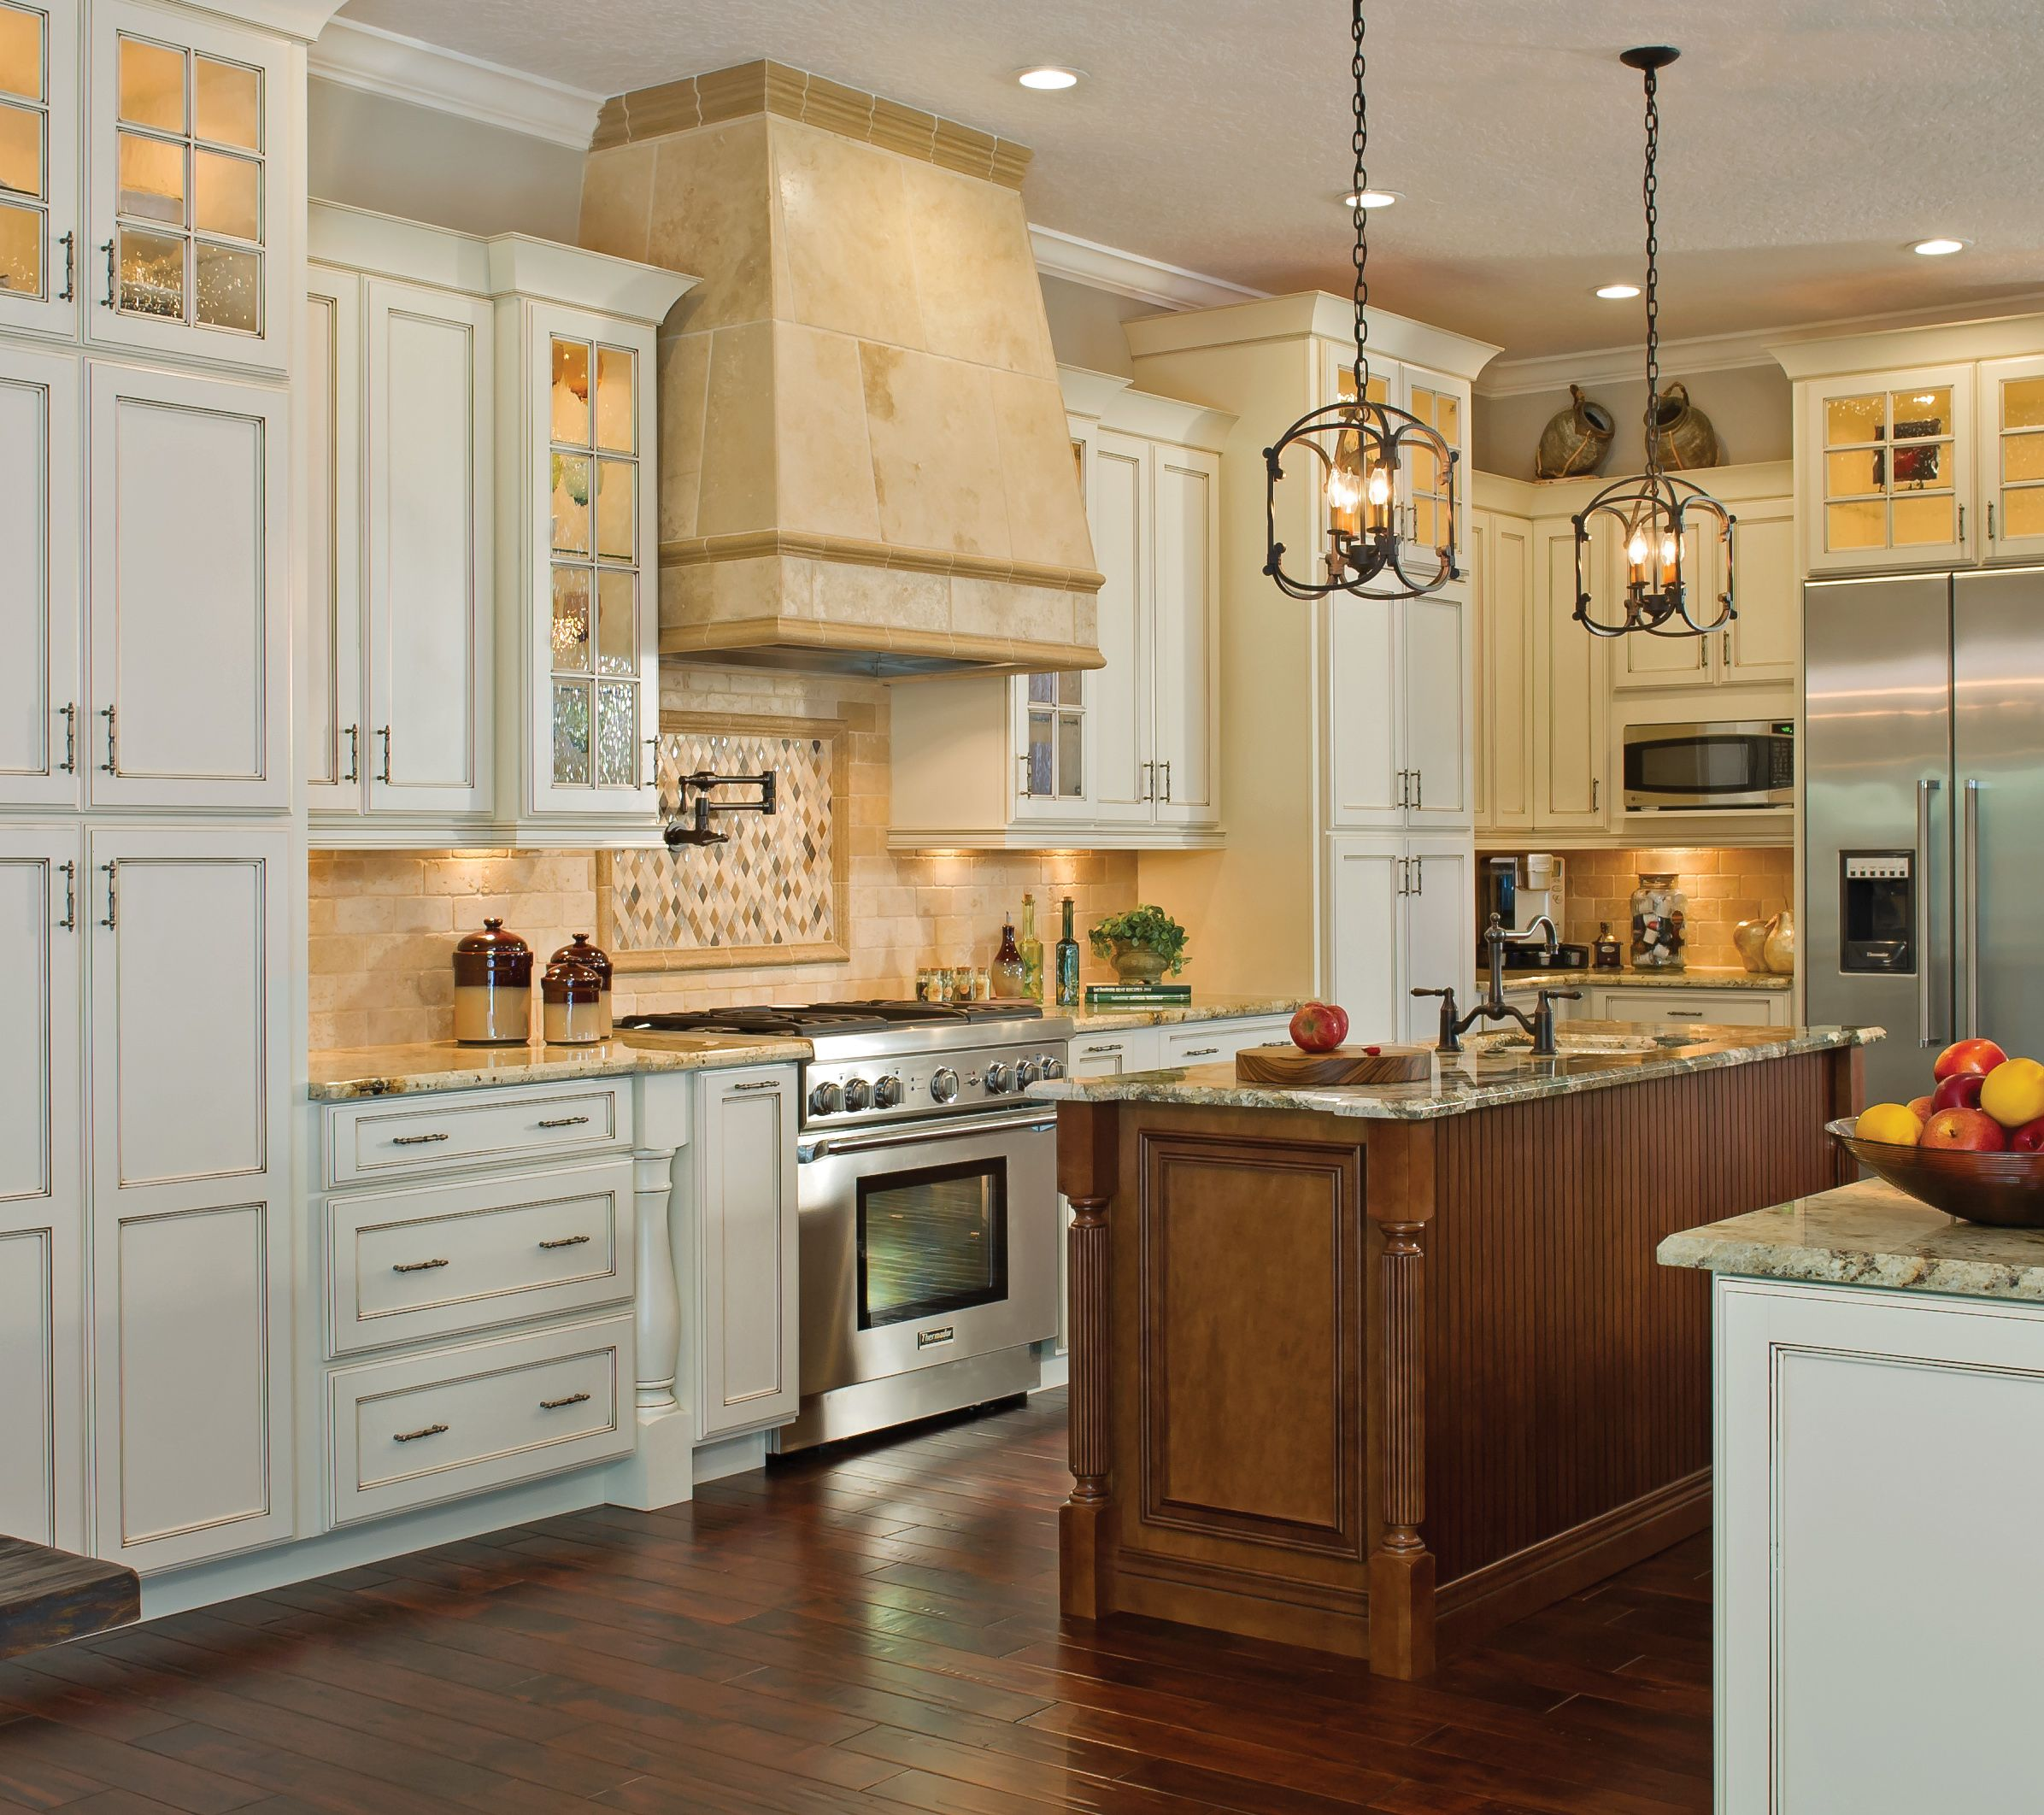 New Look Kitchen And Bath: Traditional Kabinart Kitchen Shown In Hampton On Maple